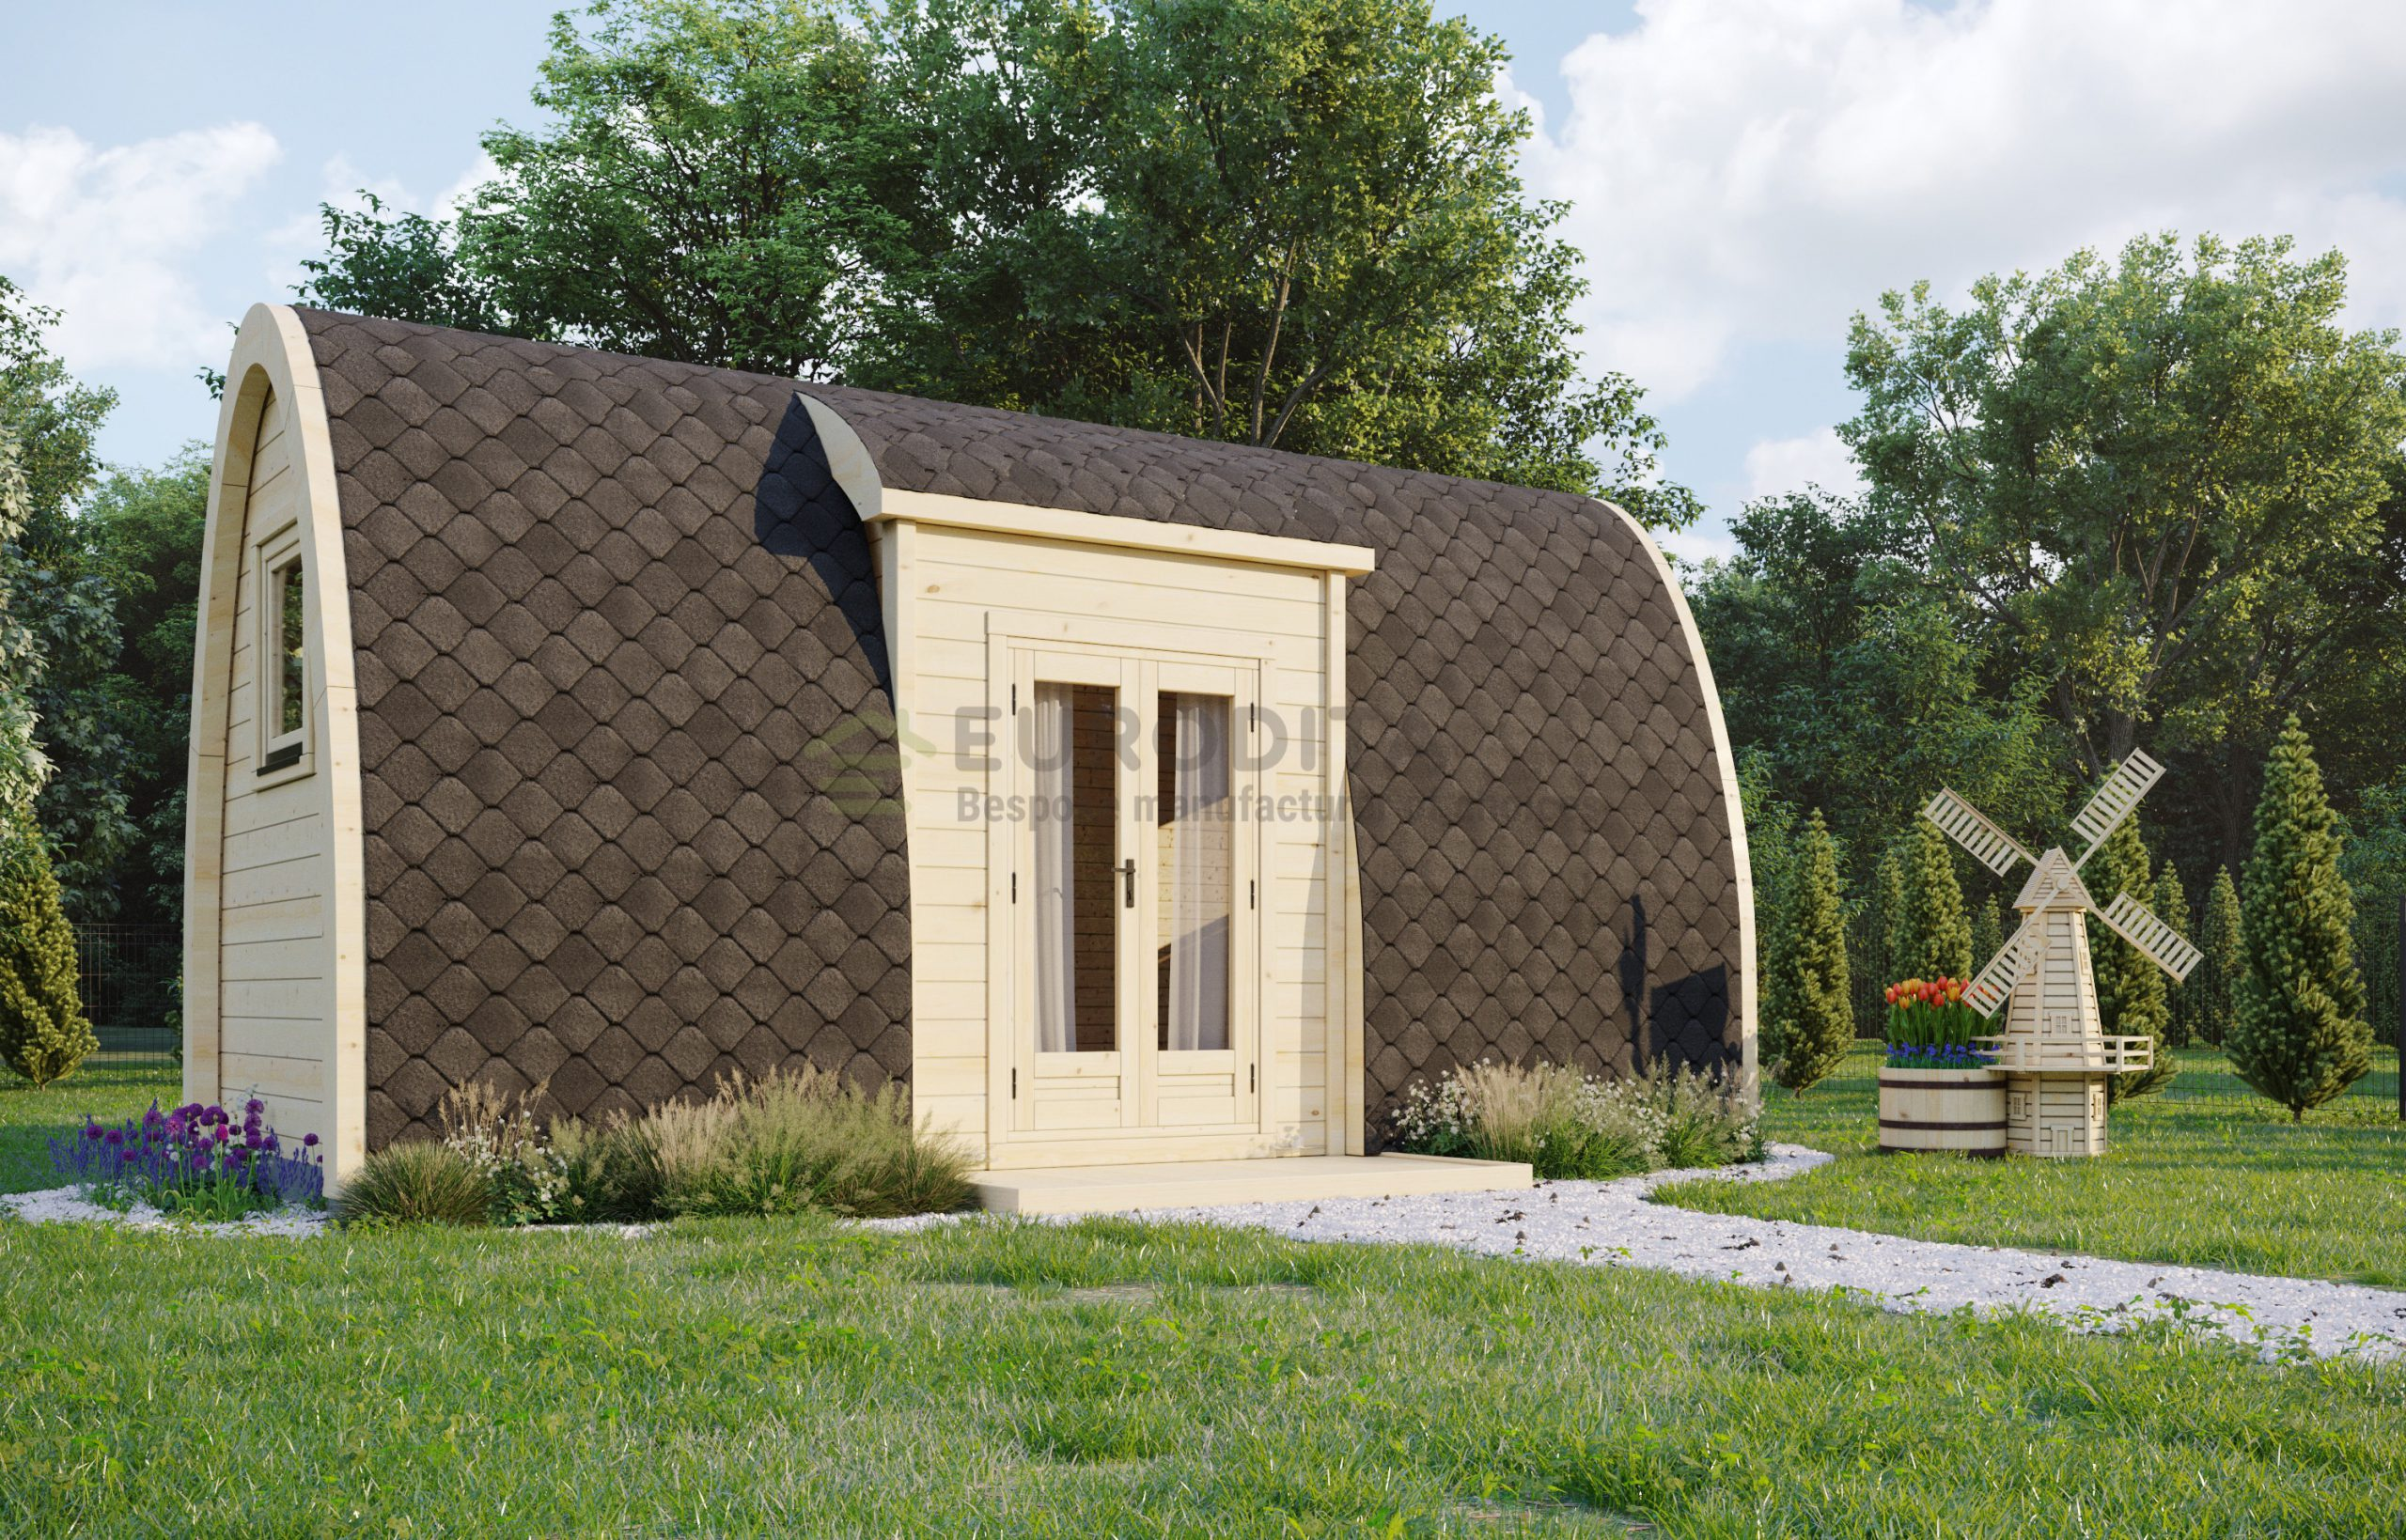 Insulated Camping Pod side entrance [2.4×6.0m] Open Plan